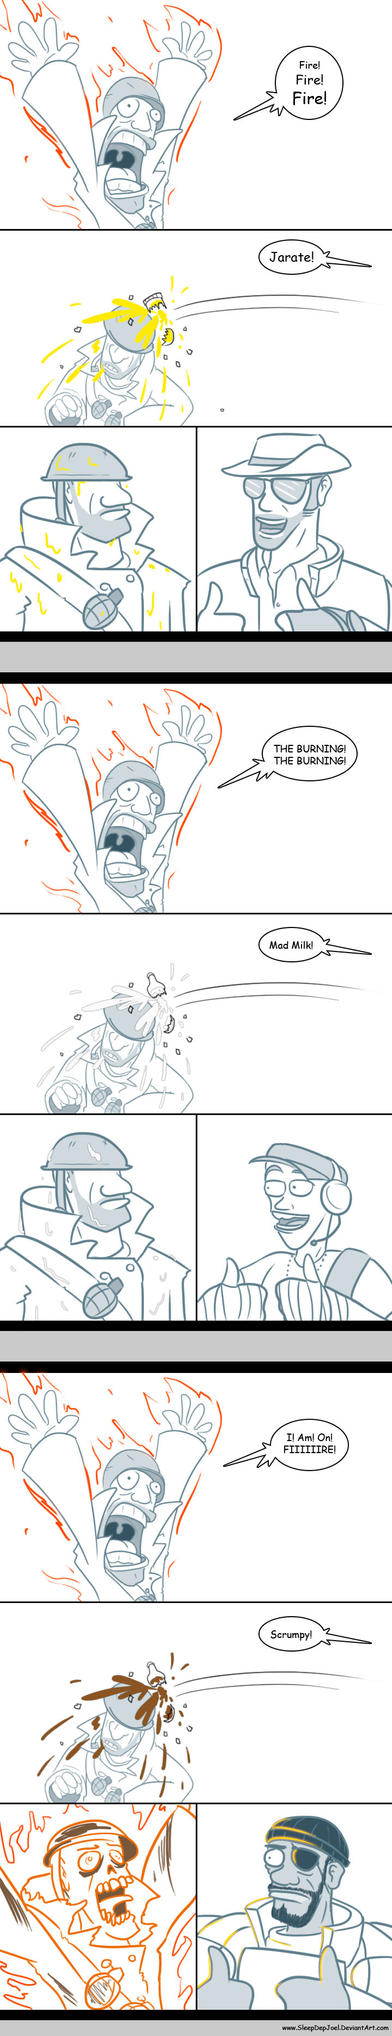 TF2: Doused by SleepDepJoel